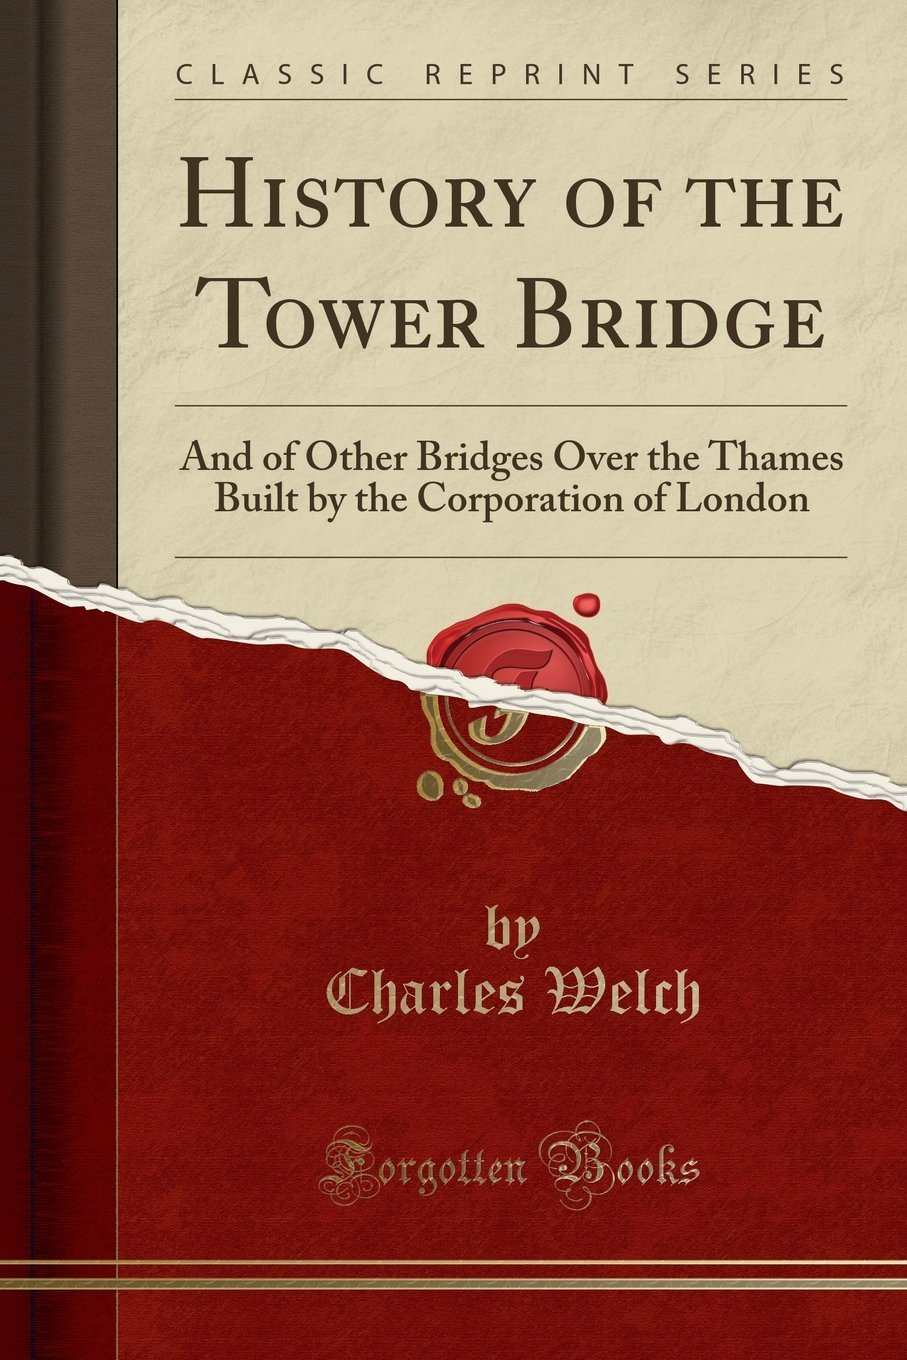 Download History of the Tower Bridge: And of Other Bridges Over the Thames Built by the Corporation of London (Classic Reprint) pdf epub